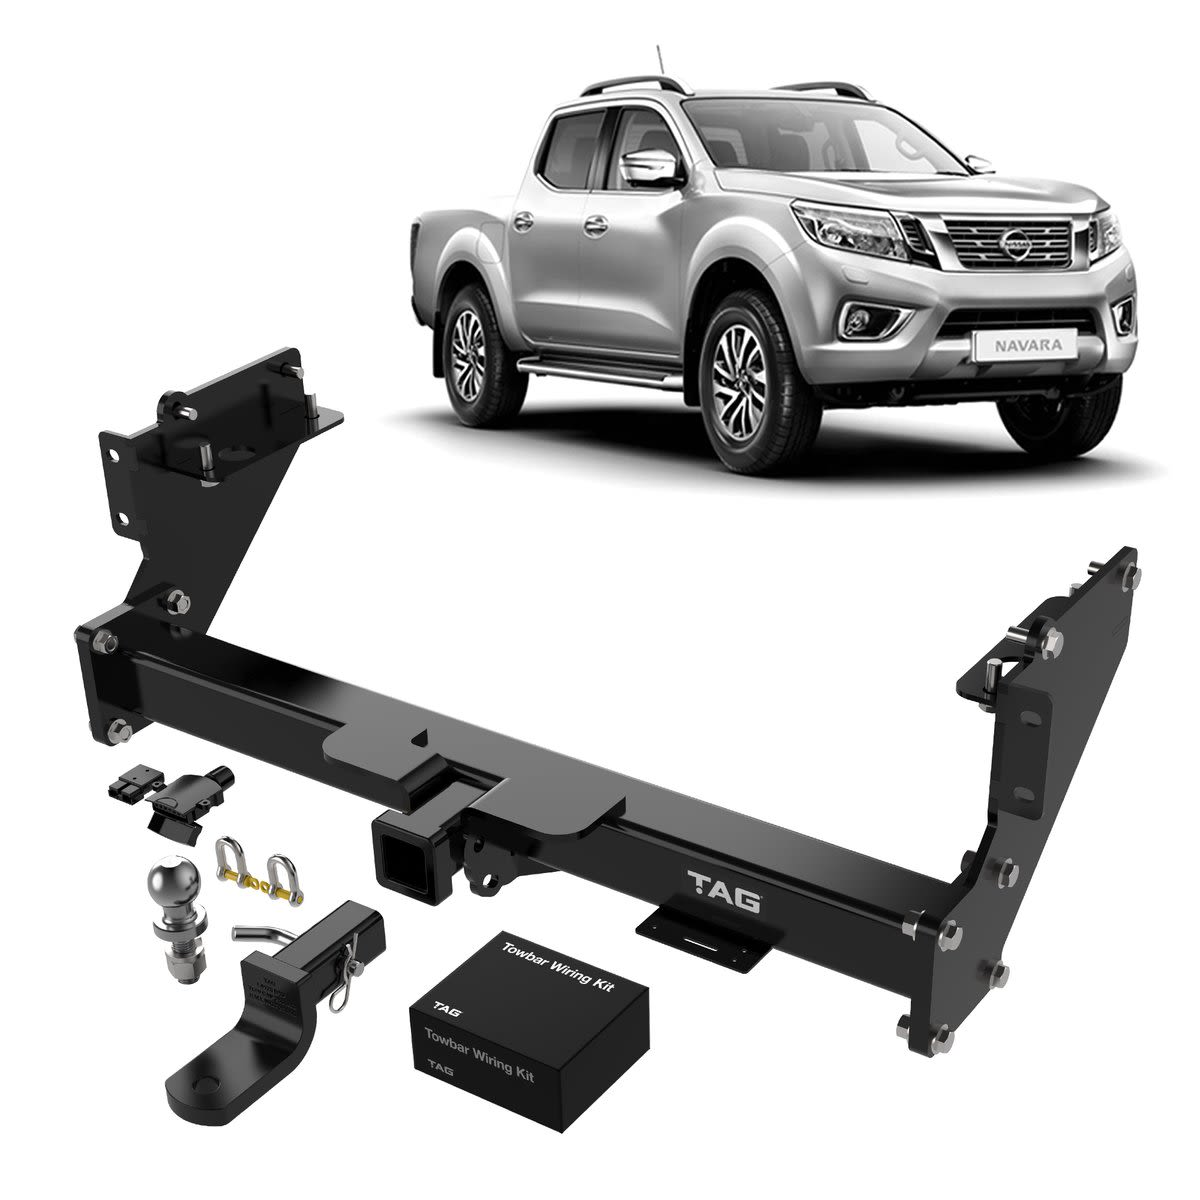 TAG Heavy Duty Towbar to suit Nissan Navara (01/2014 - on) - Direct Fit Bypass Wiring Harness